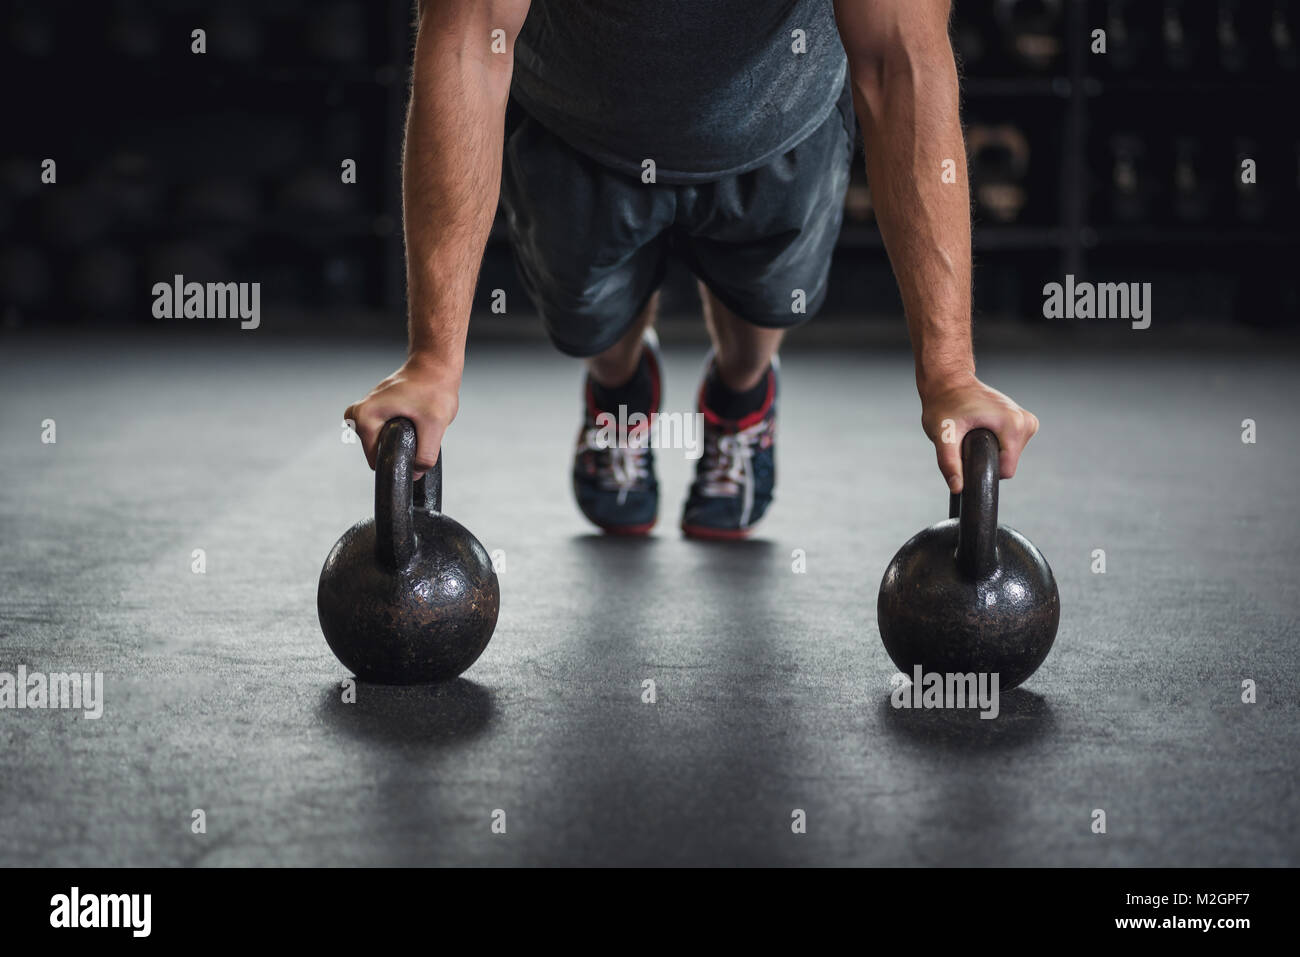 Weightlifting, powerlifting, crossfit, strength training. - Stock Image